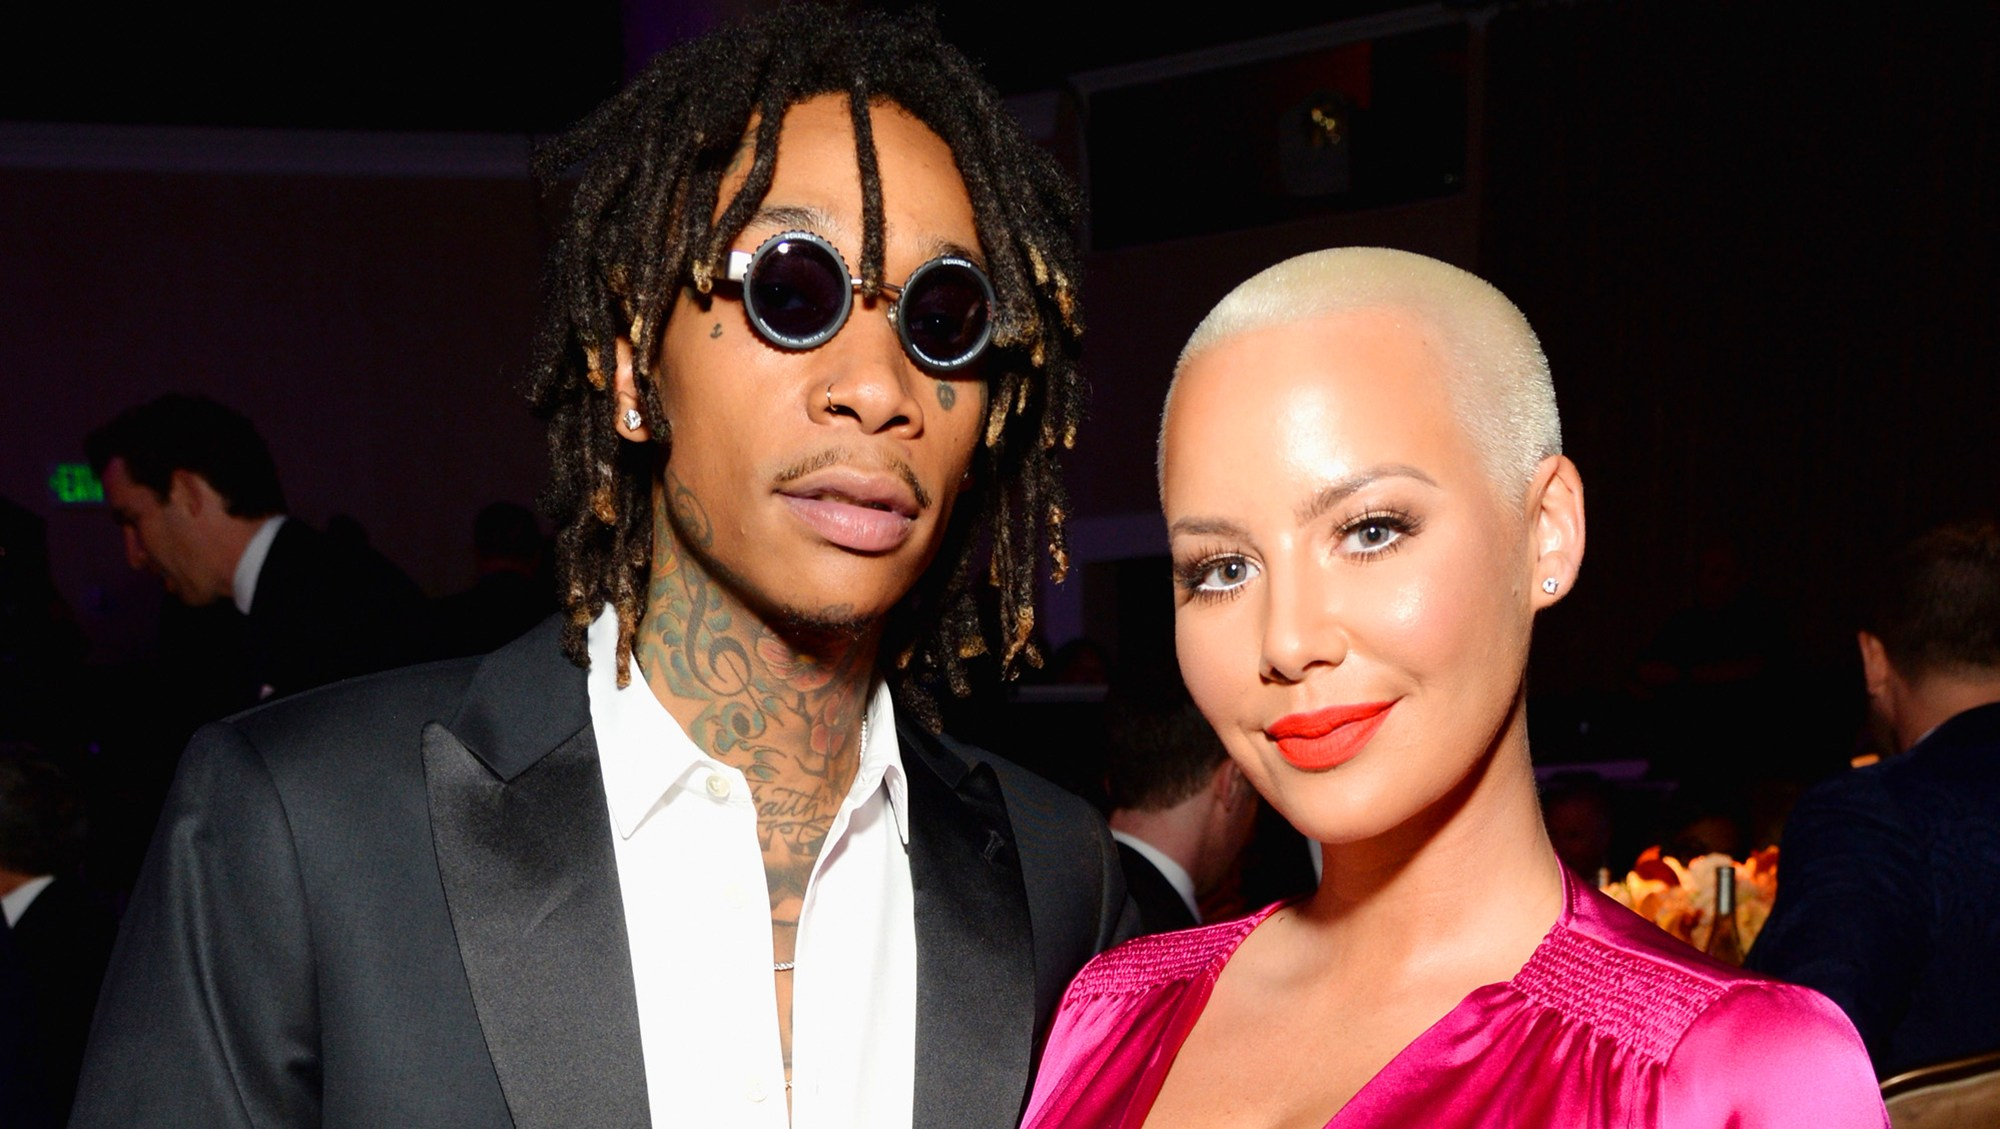 Recording artist Wiz Khalifa (L) and model-TV personality Amber Rose